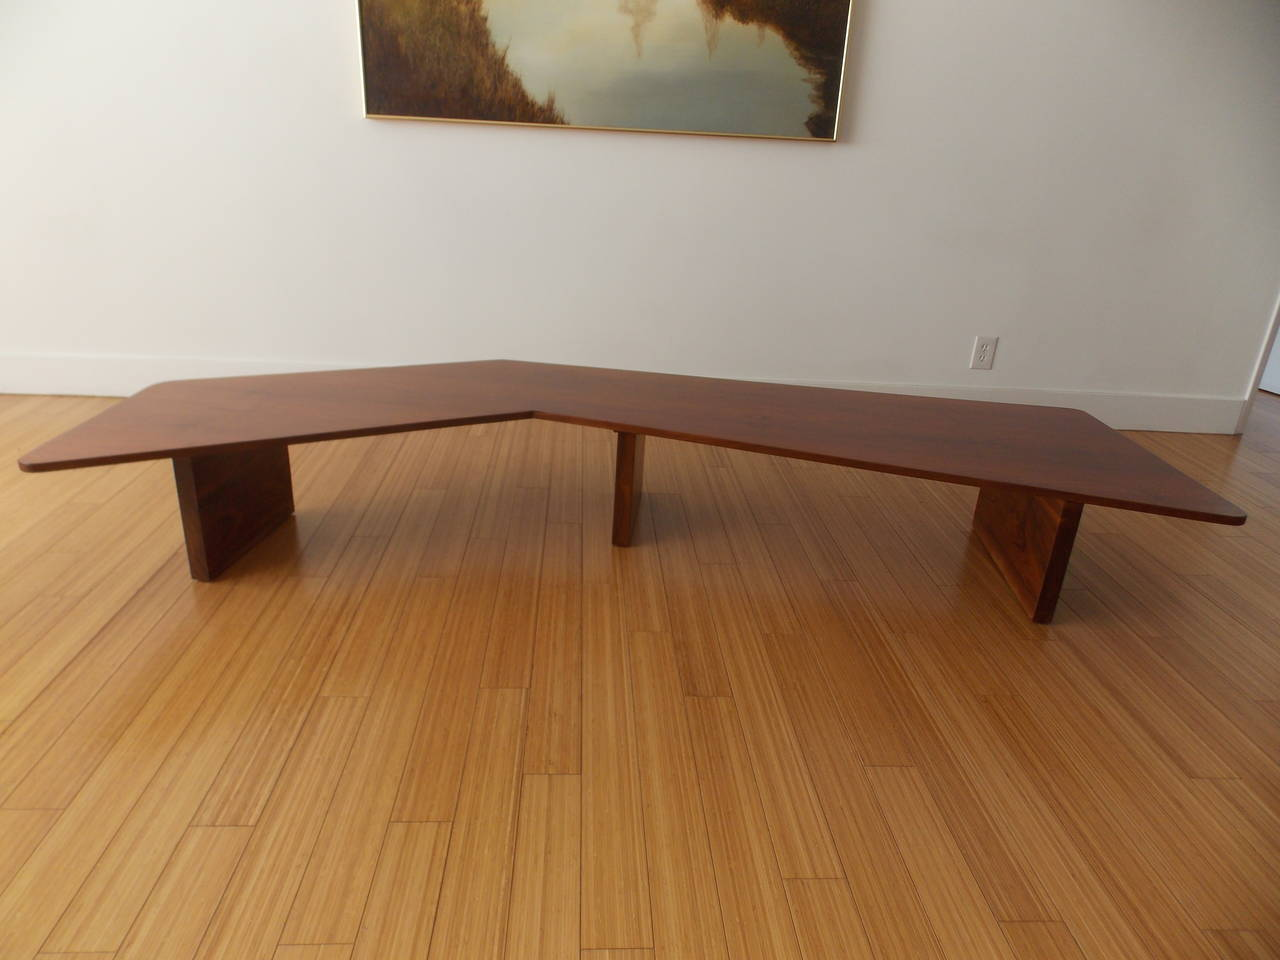 Long Studio Design Coffee Table For Sale At 1stdibs